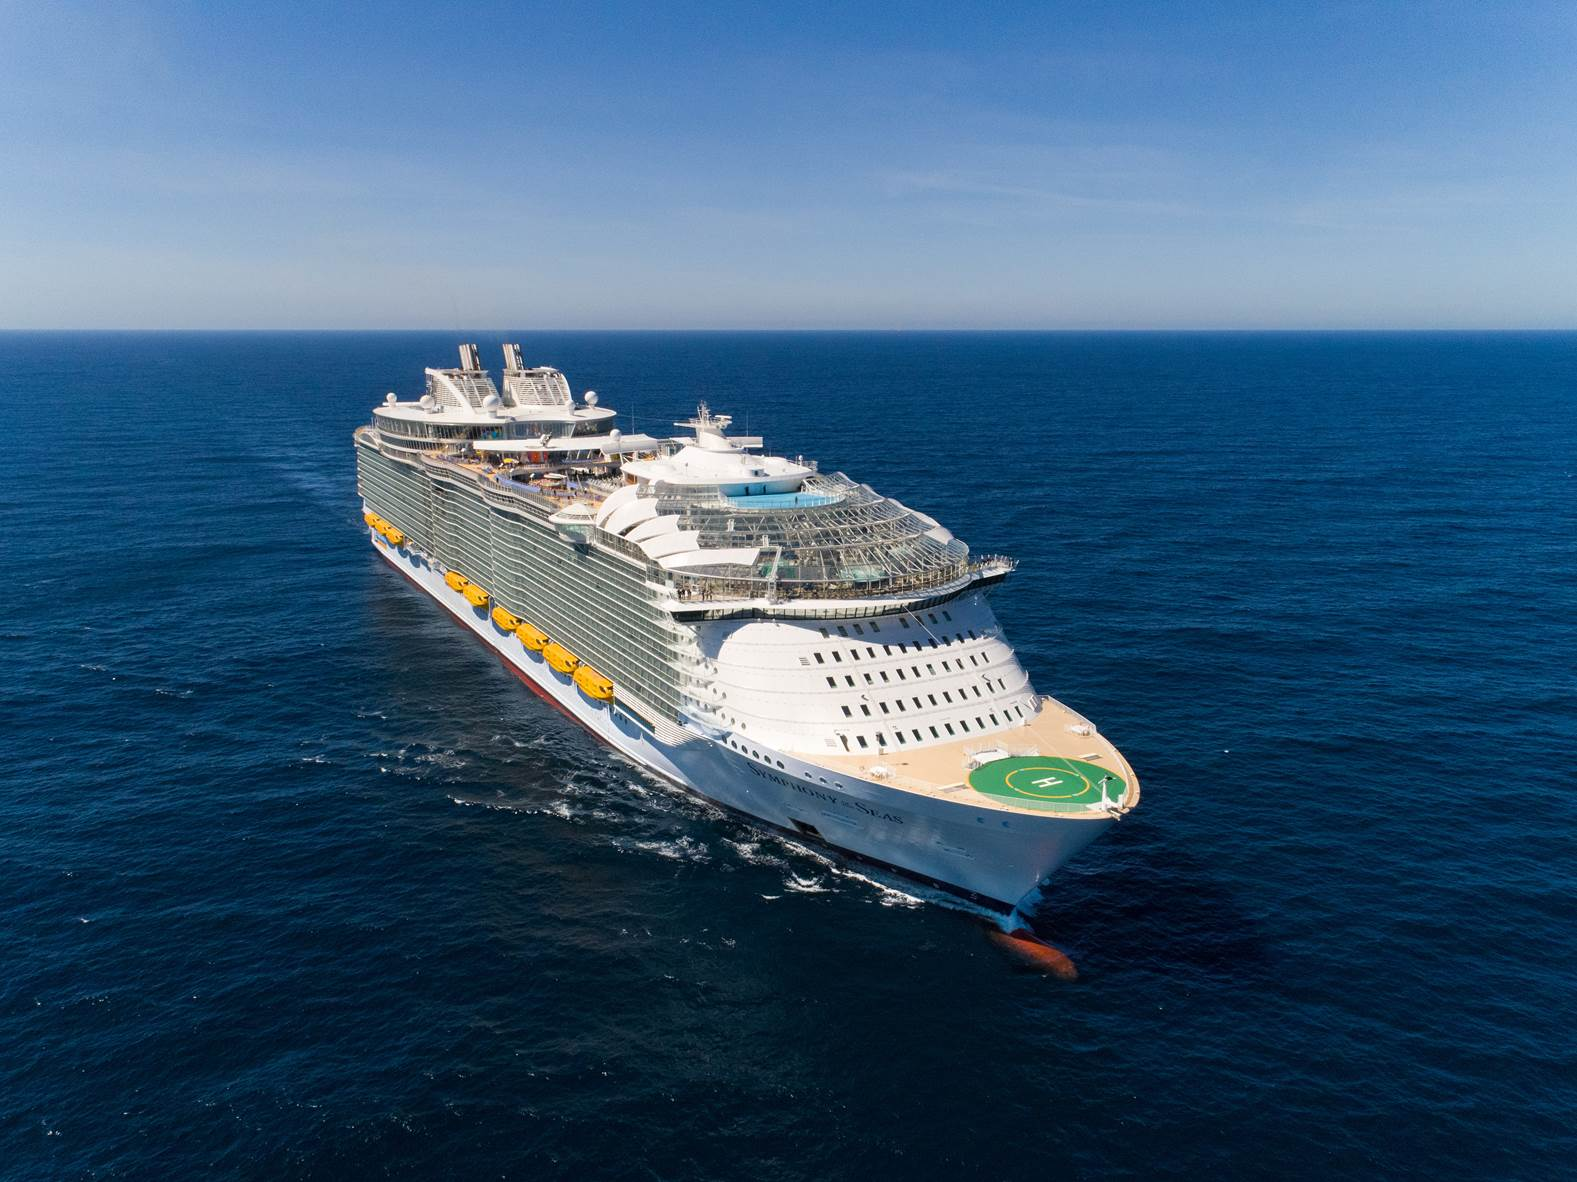 It's now Mexico's turn to gawk at new world's largest cruise ship Symphony of the Seas | USA Today